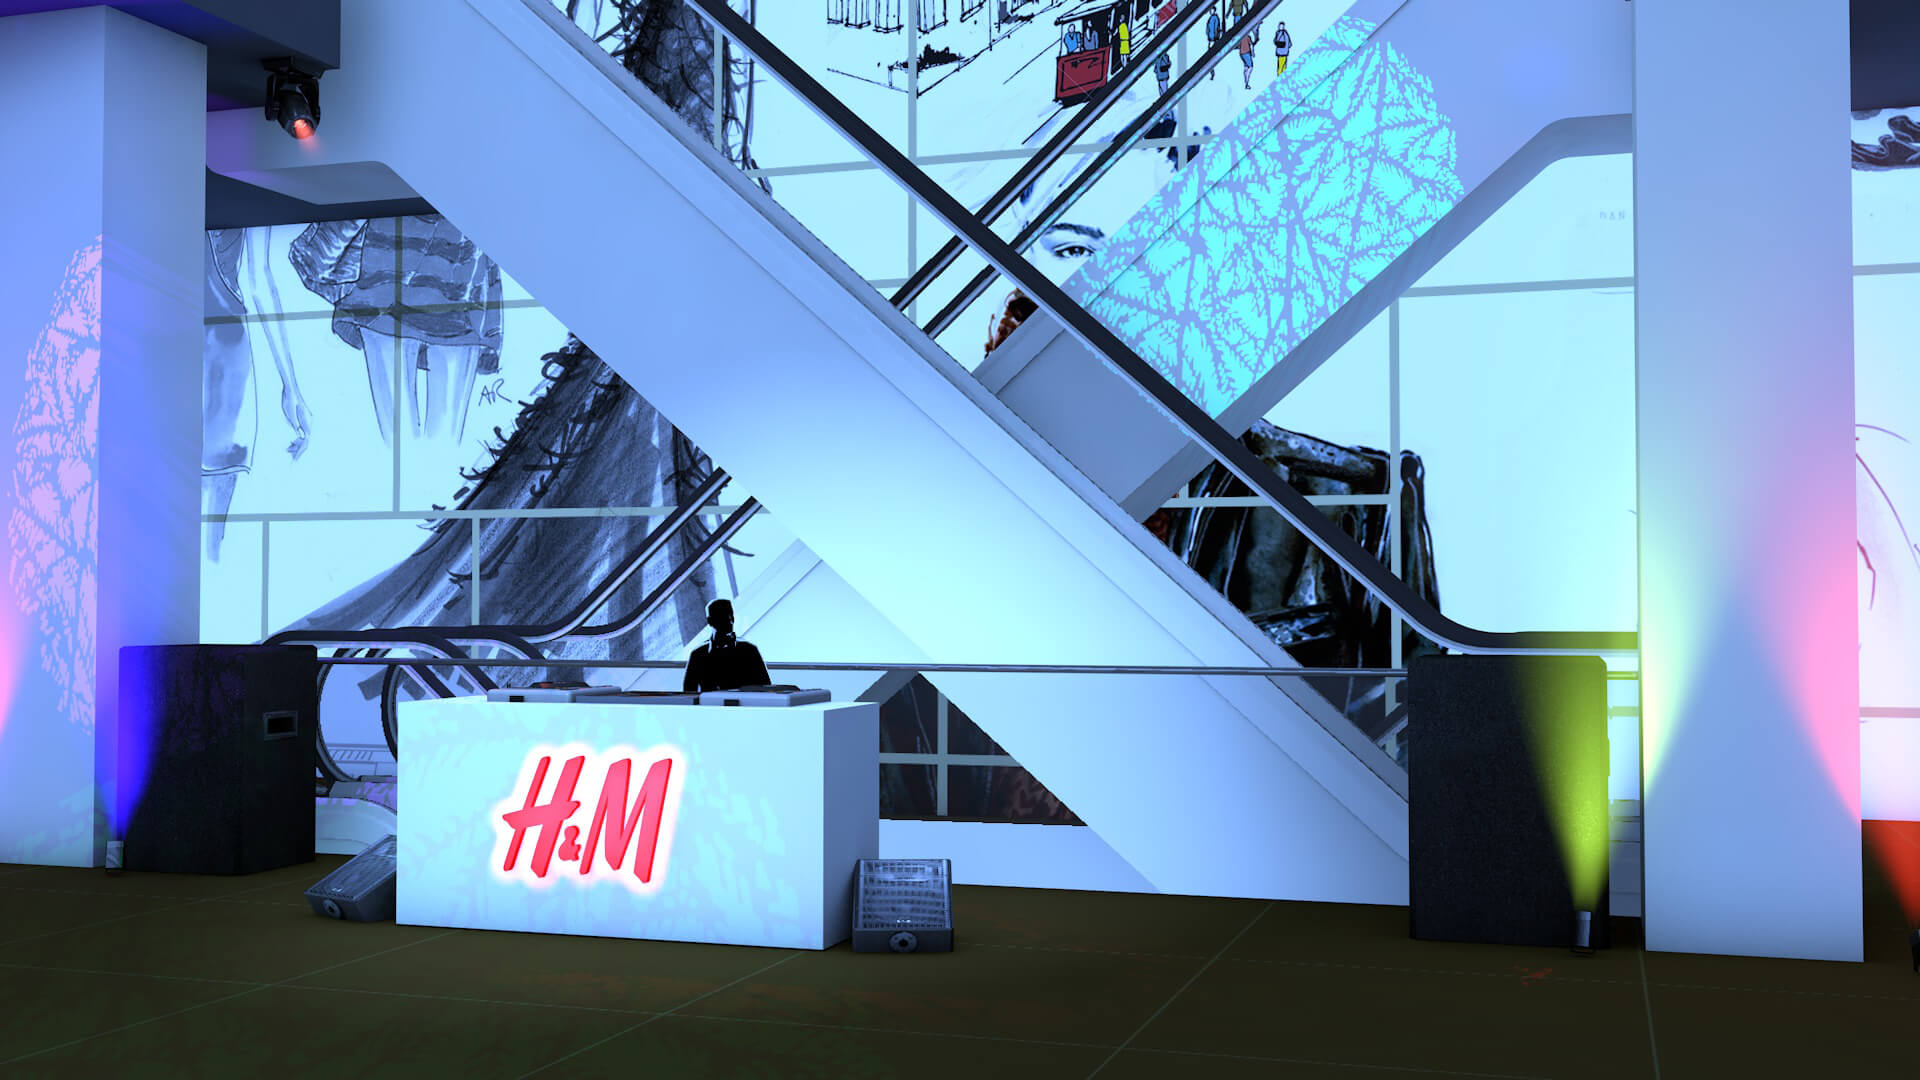 H&M Fashion Convention with DJ motion graphics and lighting